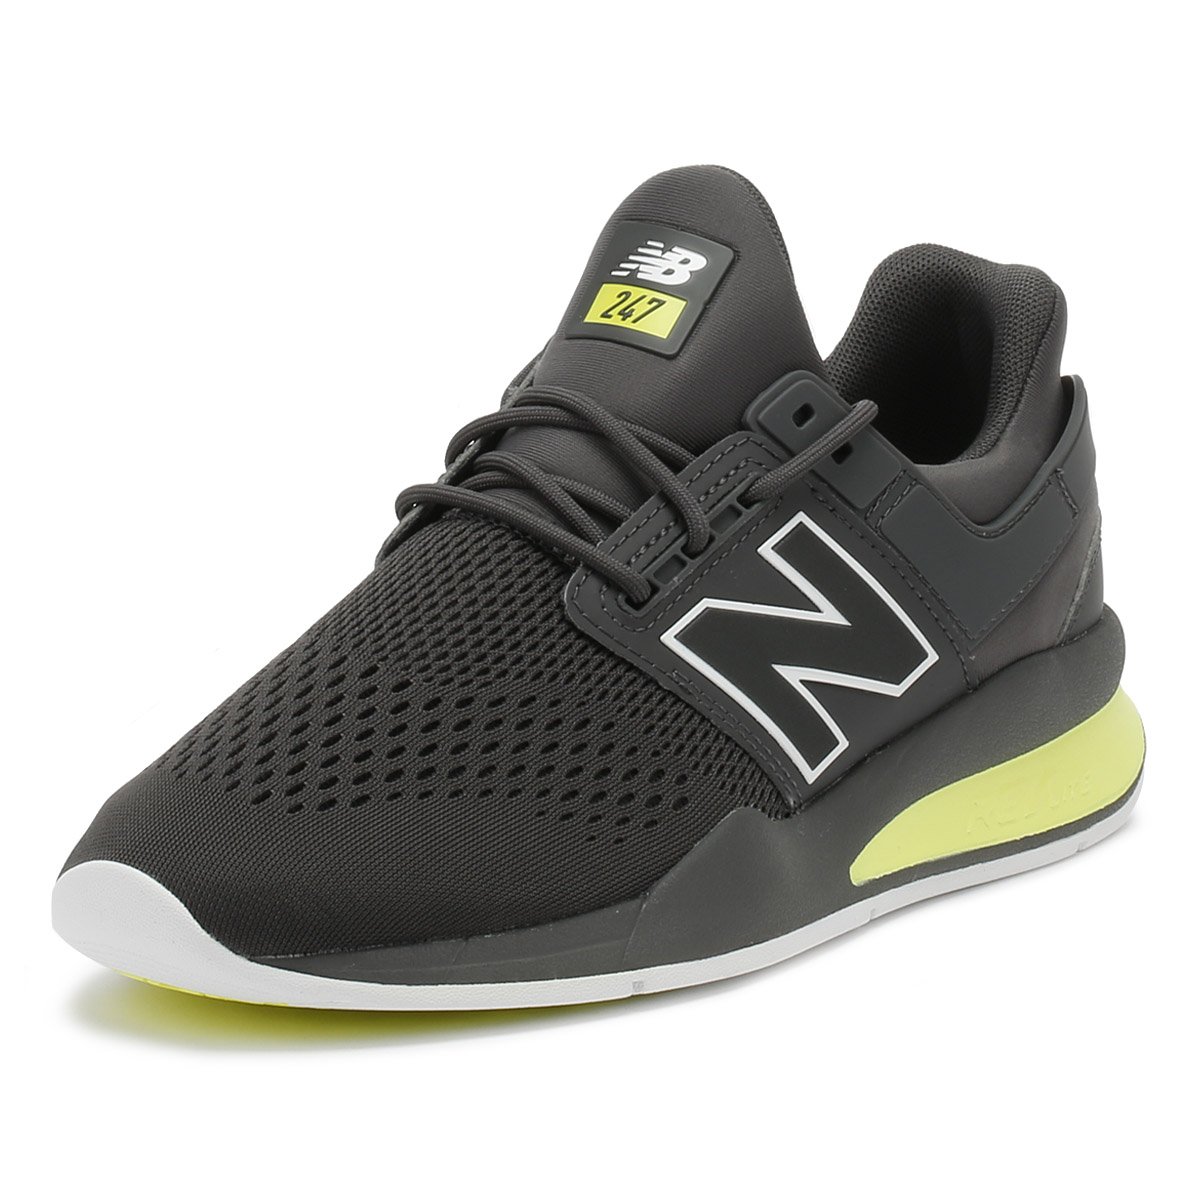 quality design 5e794 693e6 Details about New Balance Mens Trainers Magnet Grey  Solar Yellow 247 Lace  Up Running Shoes